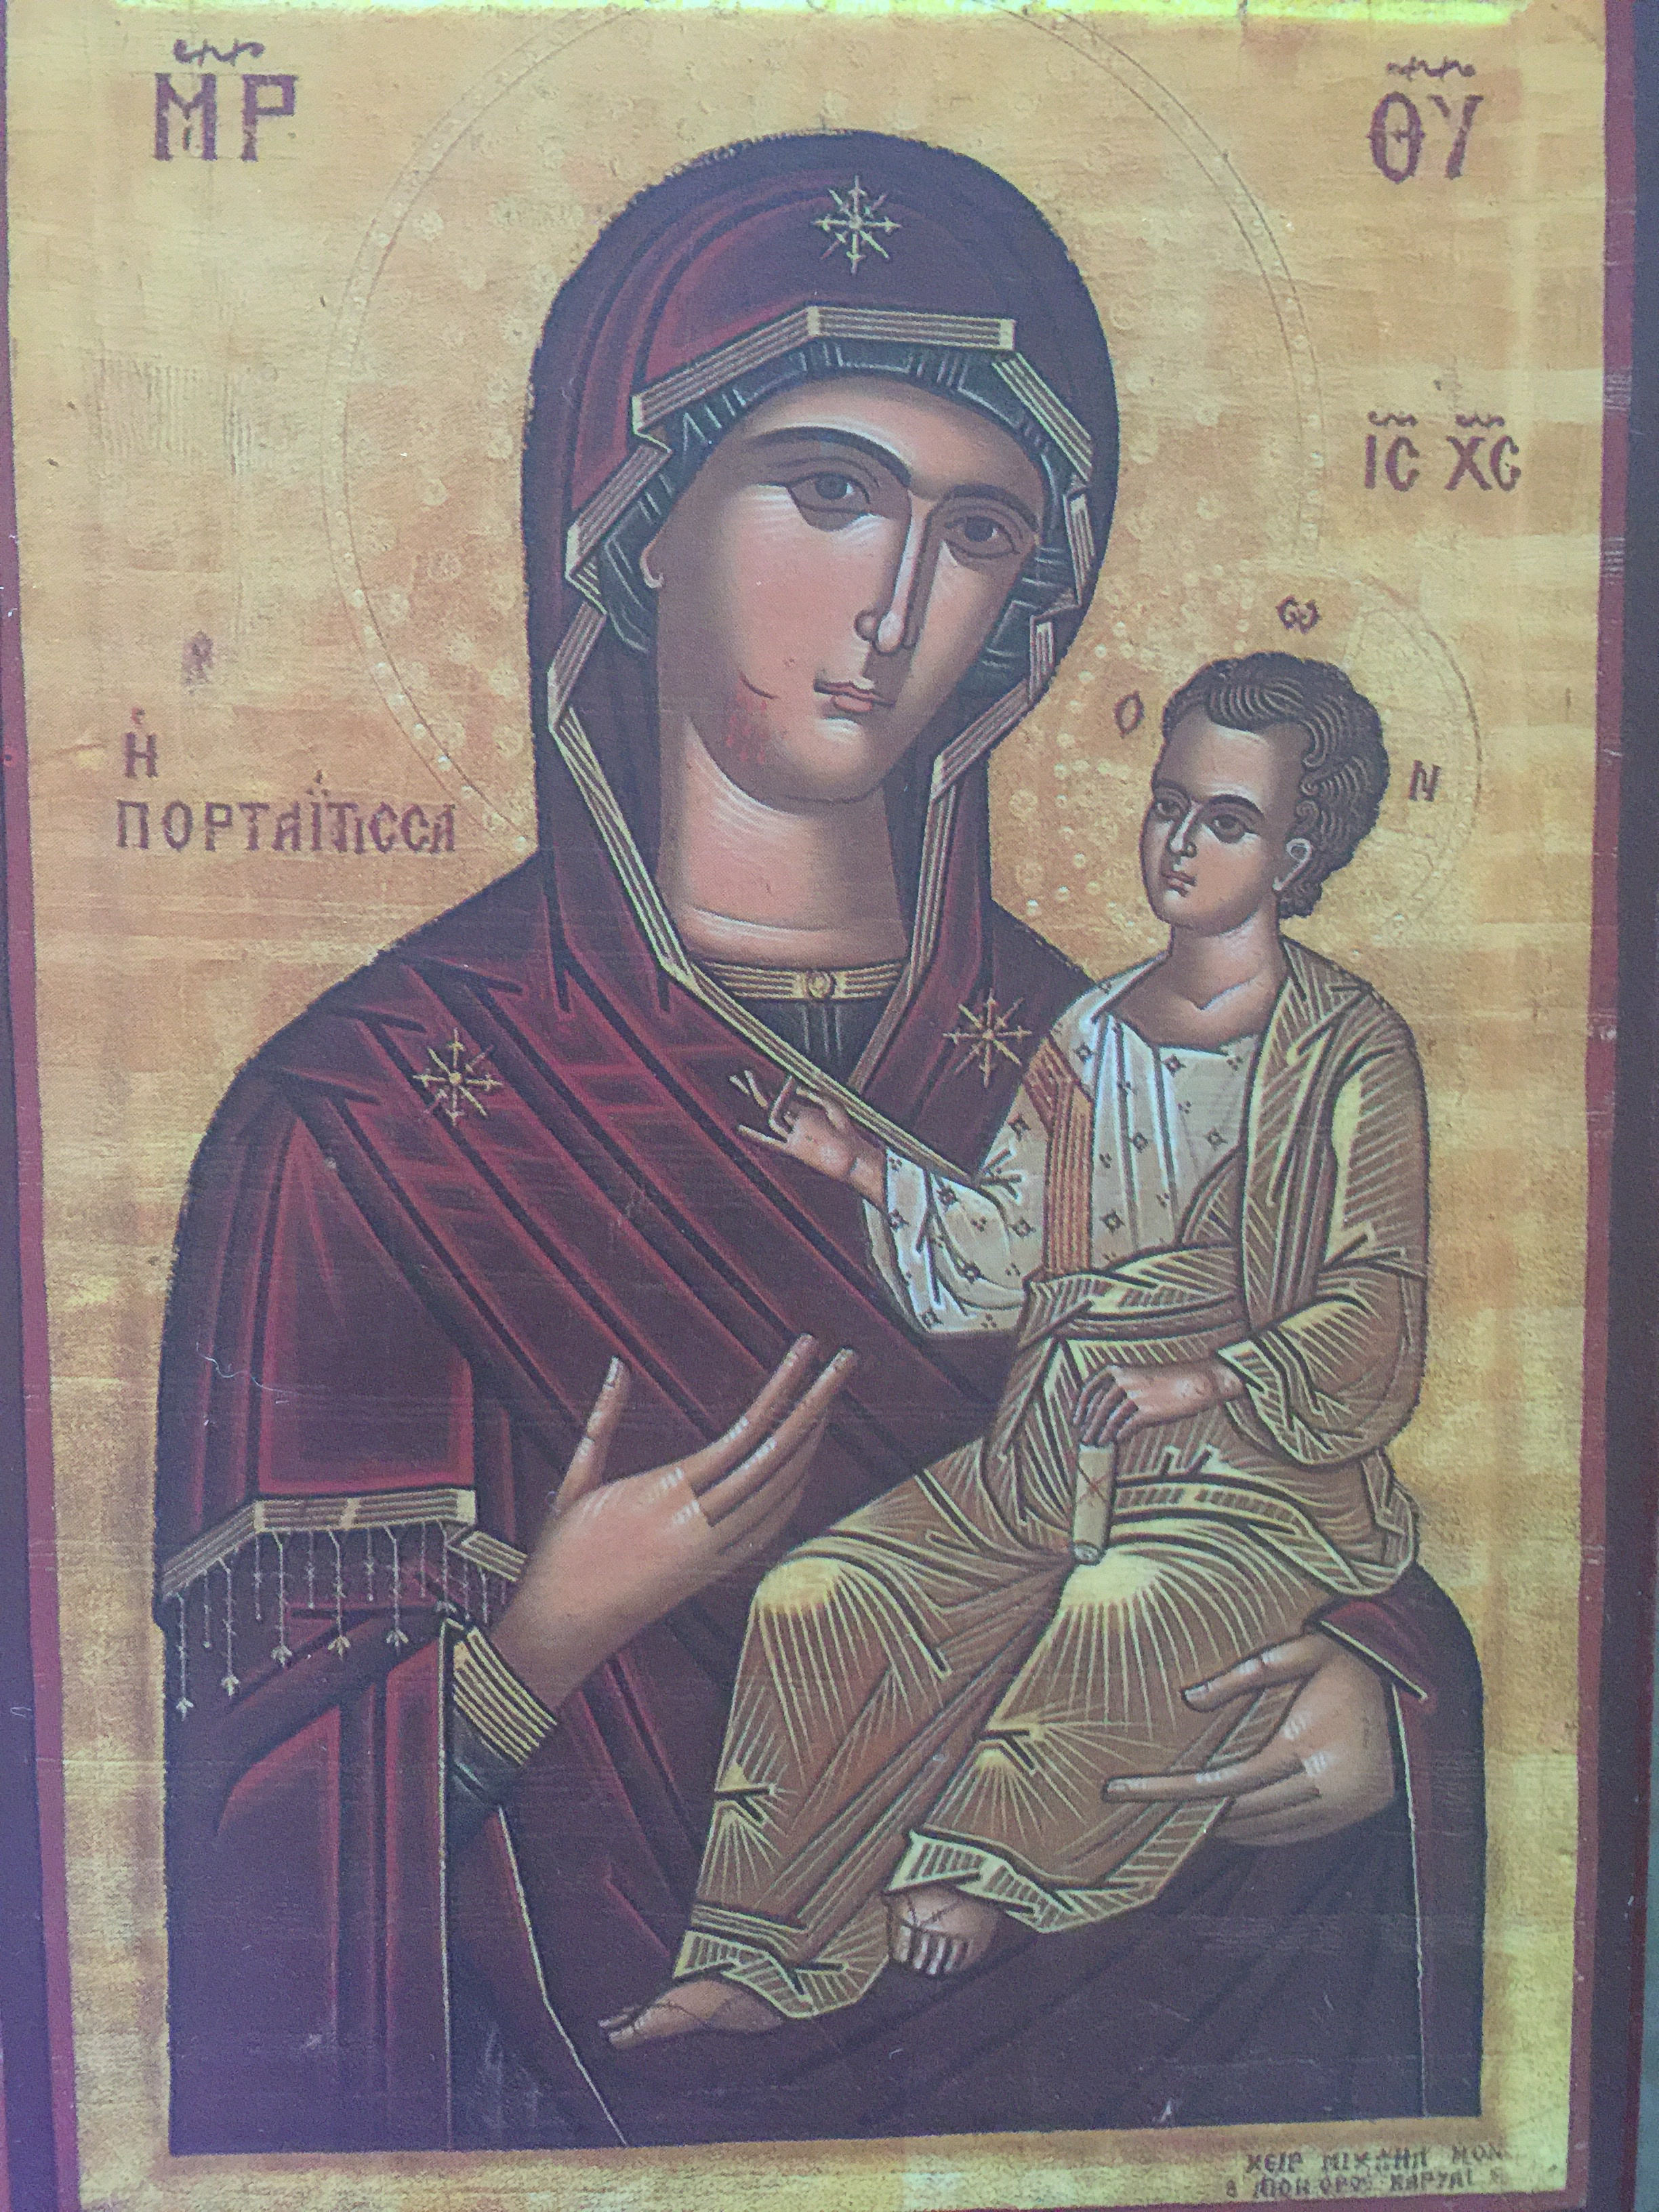 In 2011, I attended classes at St. Seraphim Orthodox Church, where the priest met with me and gave me this icon of the Theotokos and Christ. It now sits on my meditation altar.